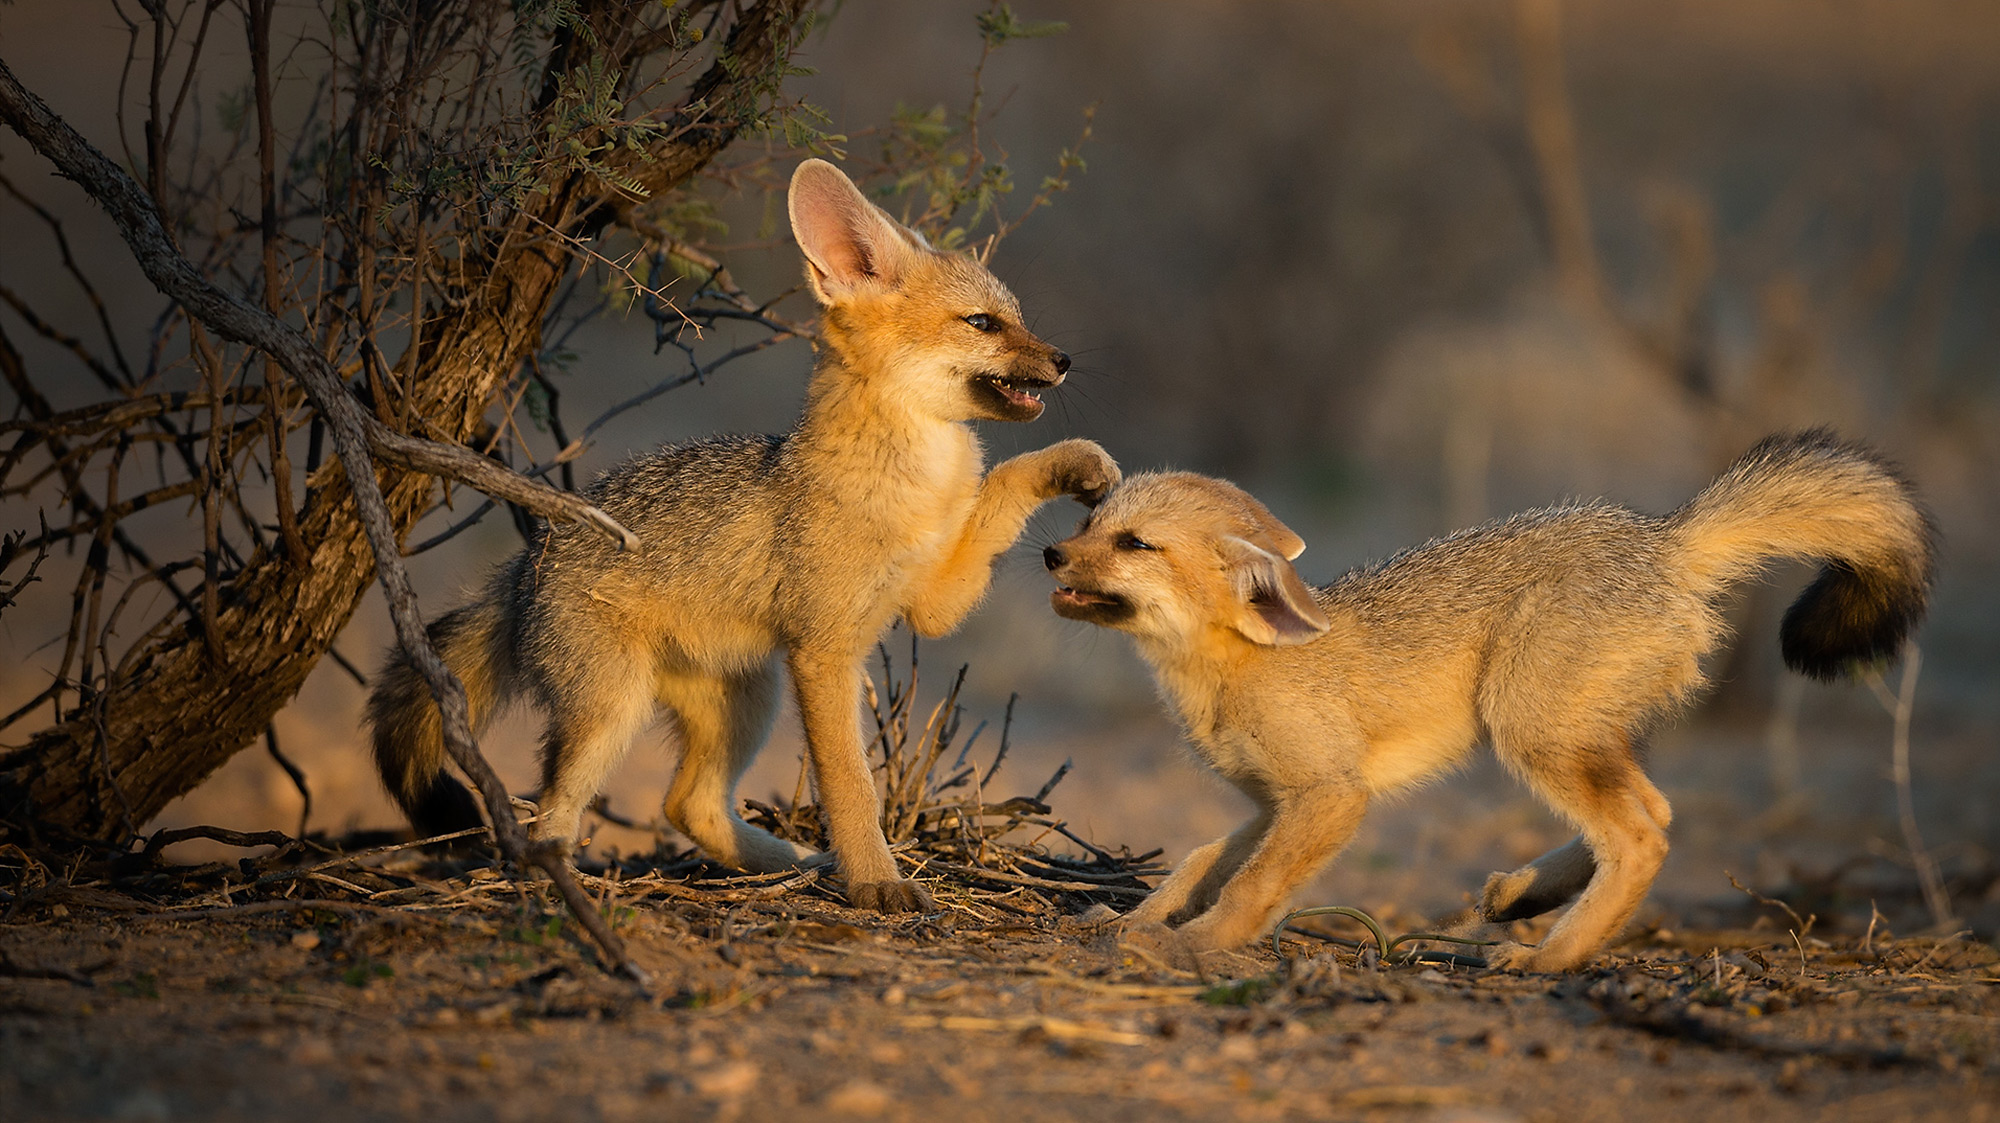 Two young Cape foxes play in Kgalagadi Transfrontier Park, South Africa